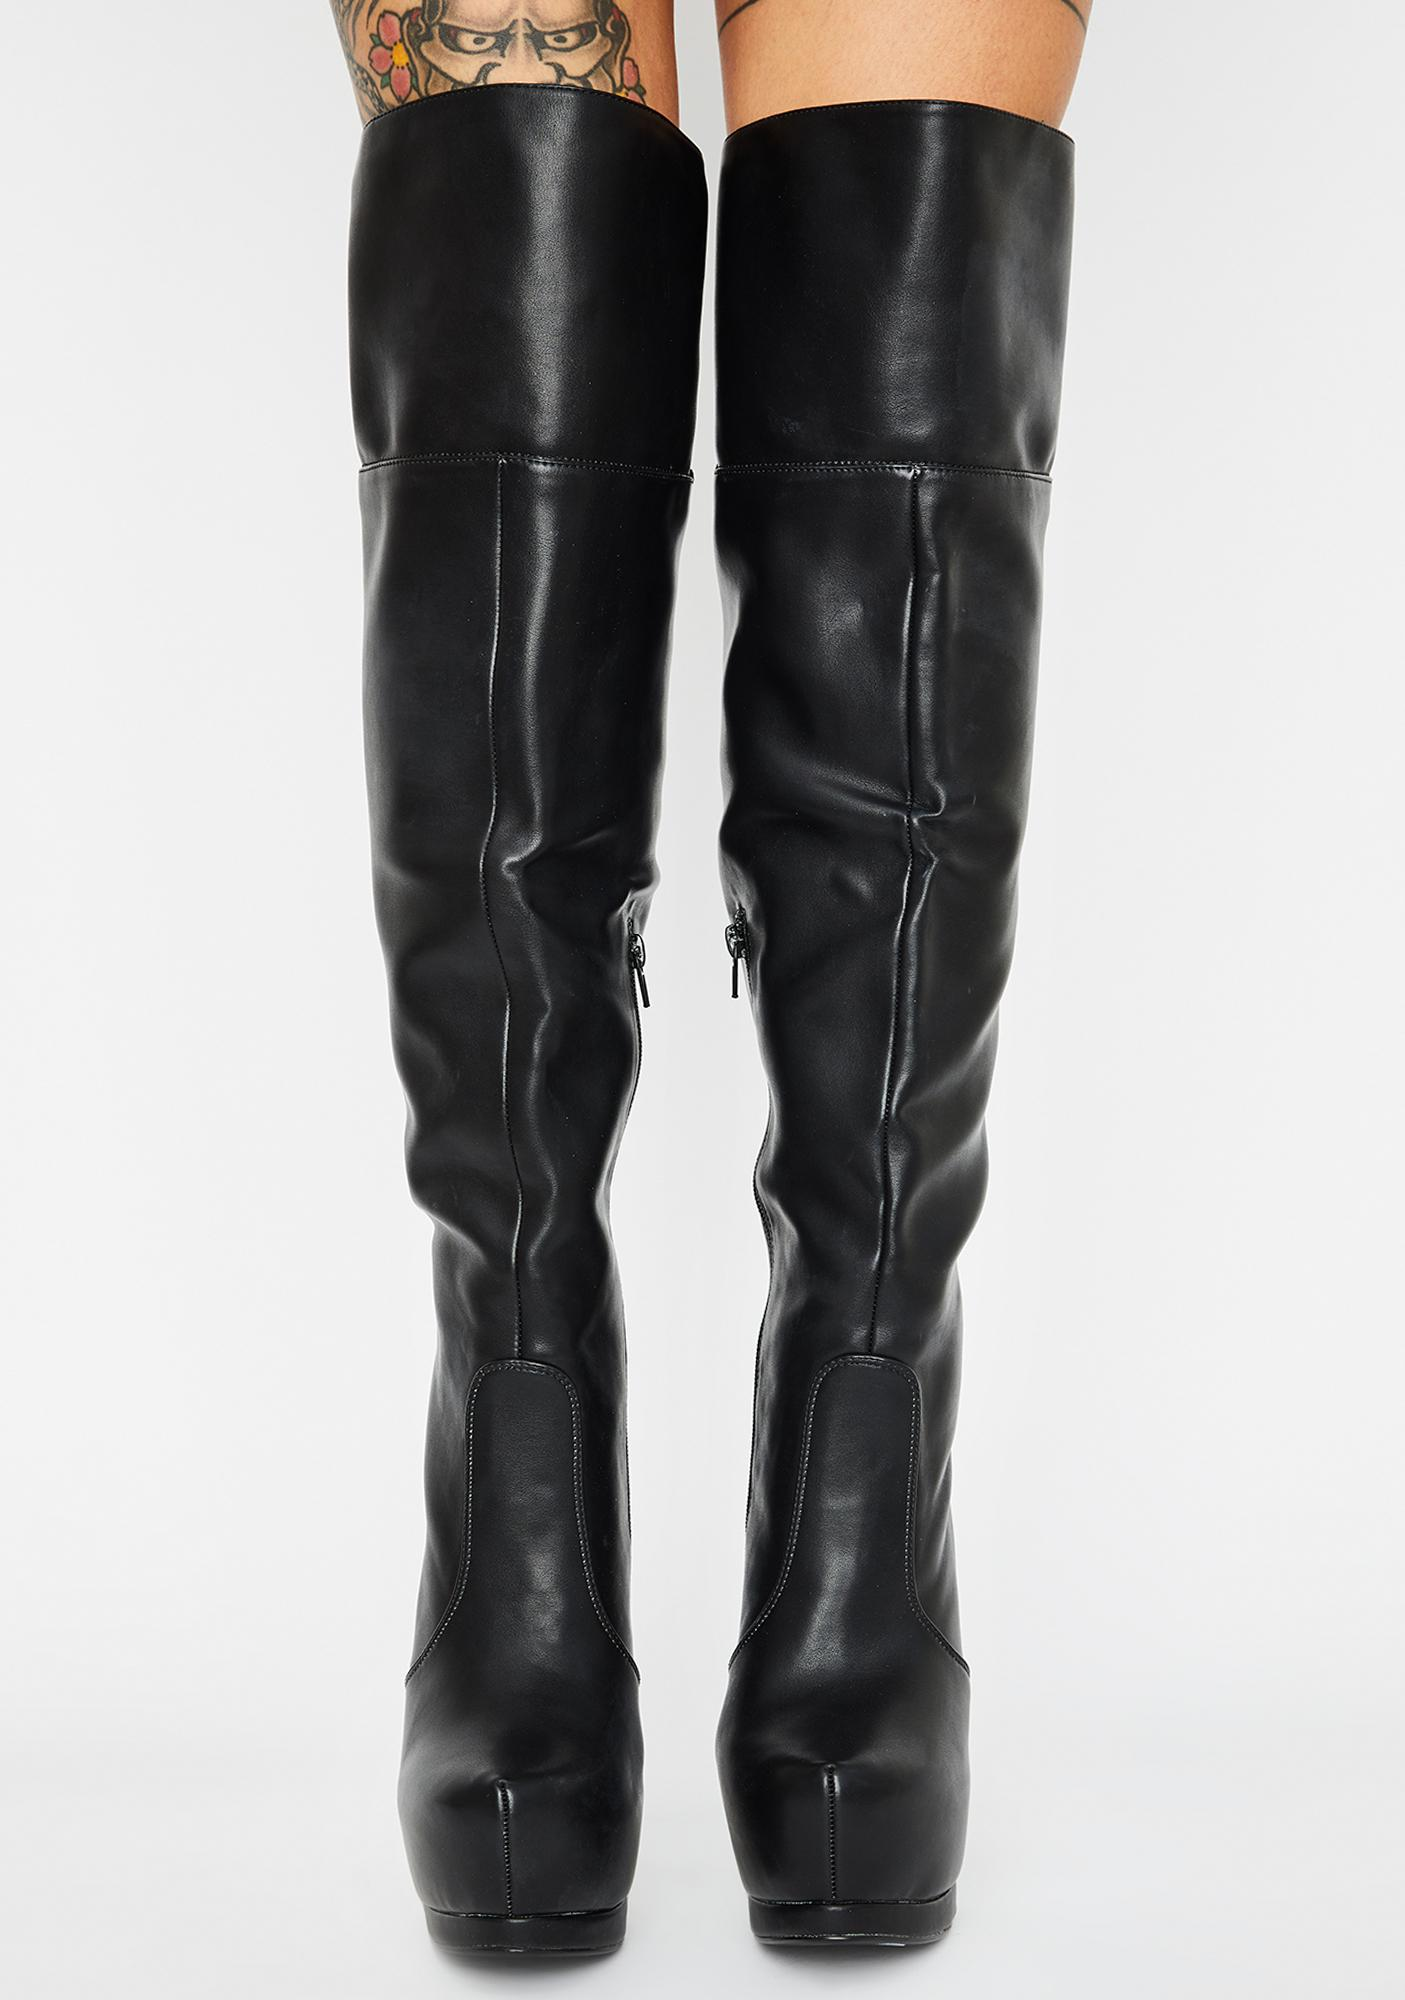 Chinese Laundry Free Form Smooth Platform Stiletto Boots